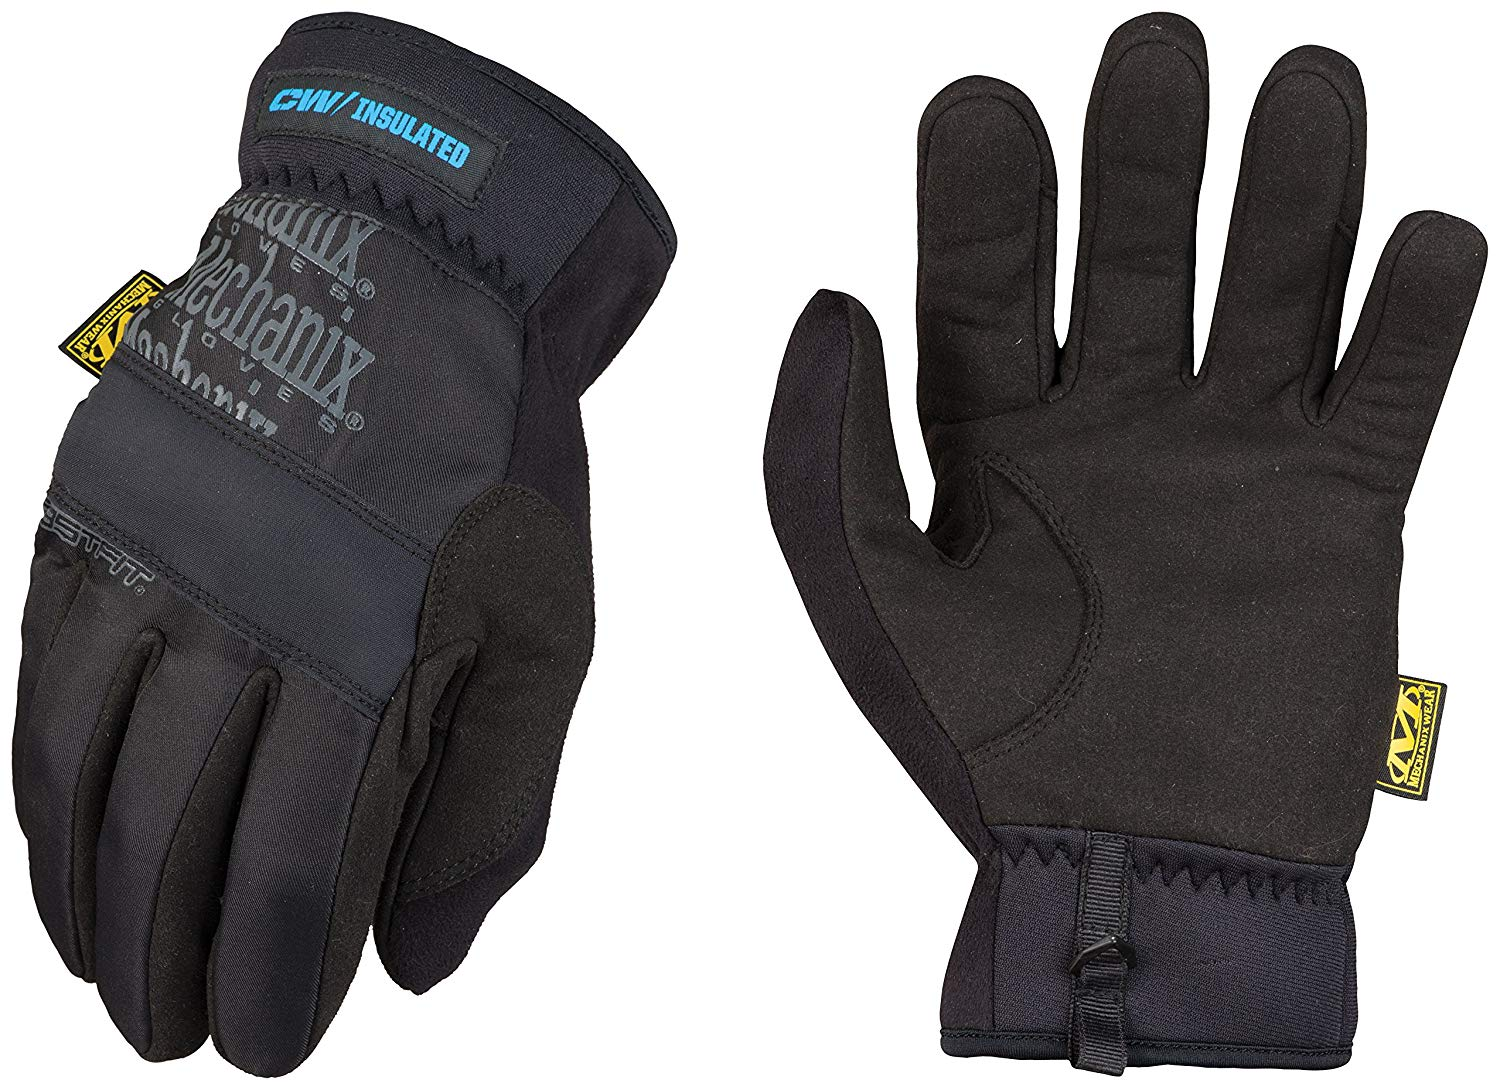 Winter Work Gloves for Men by Mechanix Wear: FastFit Insulated with 3M Thinsulate, Touchscreen (Large, Black/Grey)